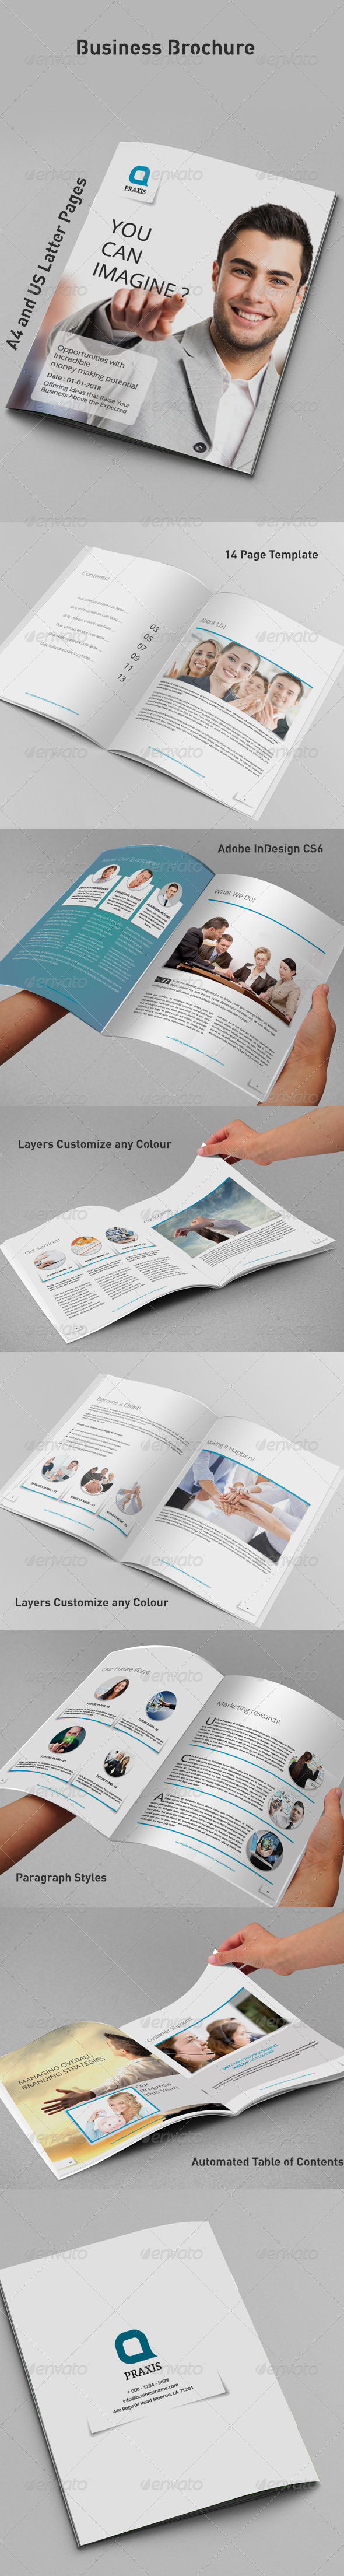 GraphicRiver Business Brochure 8391558